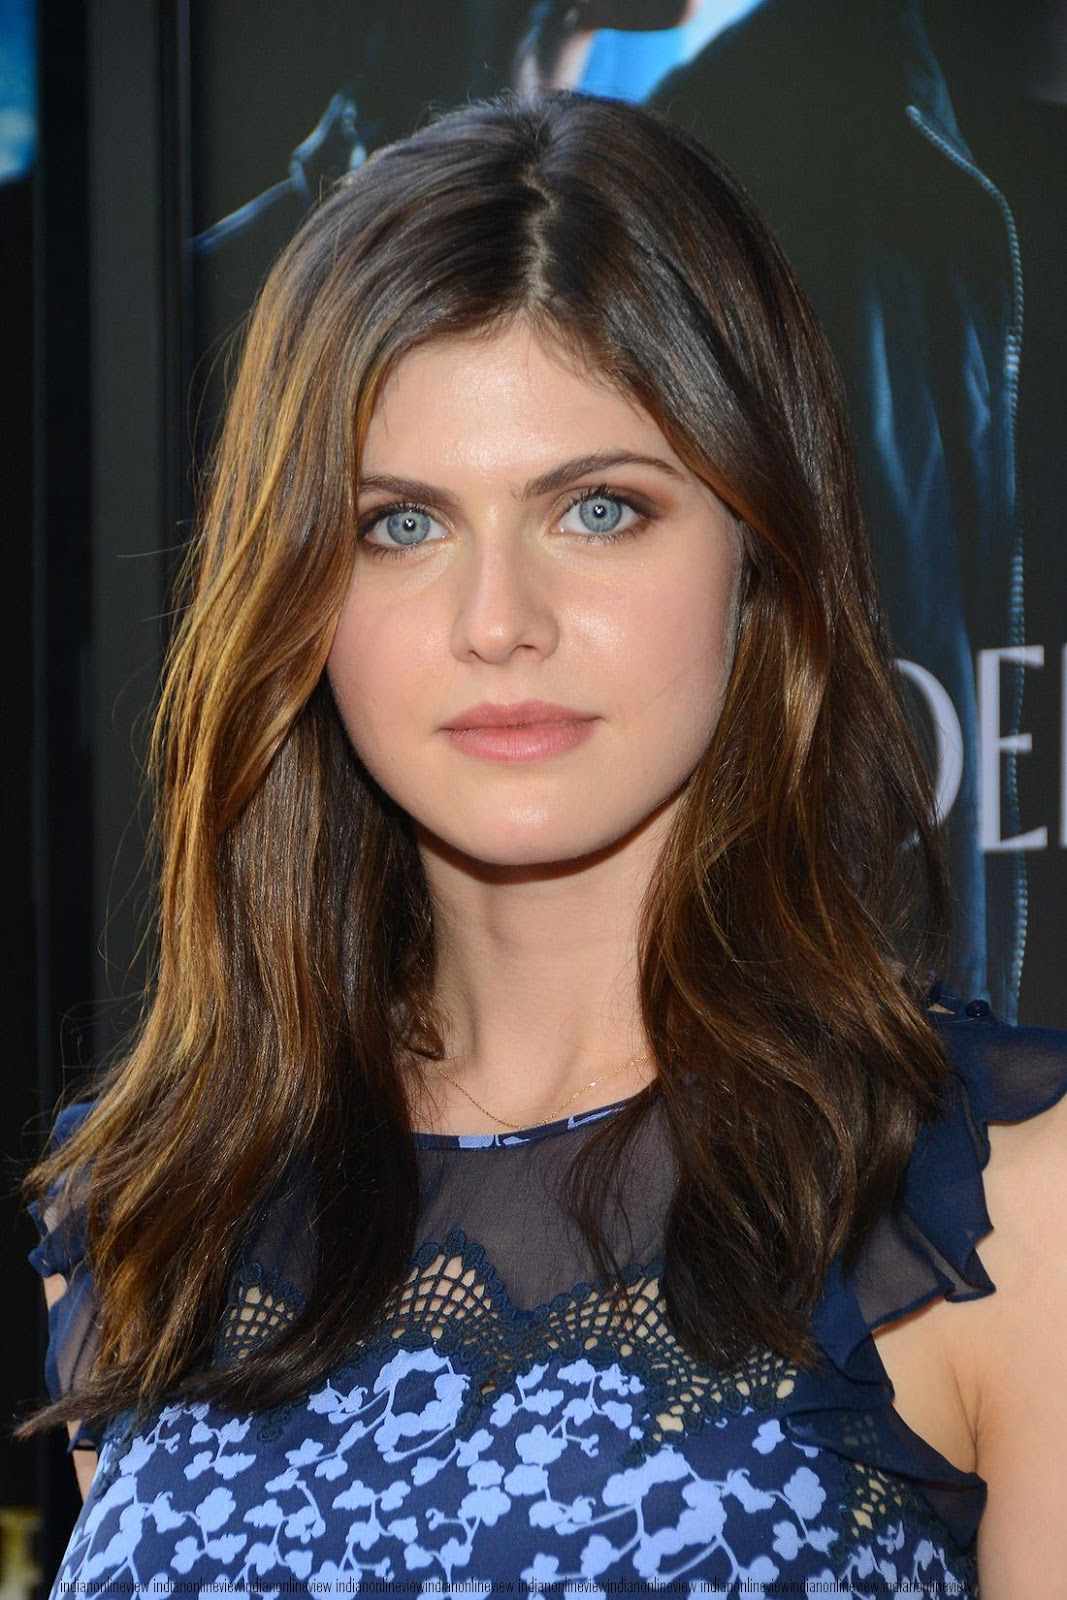 1000+ images about Alexandra Daddario on Pinterest ...